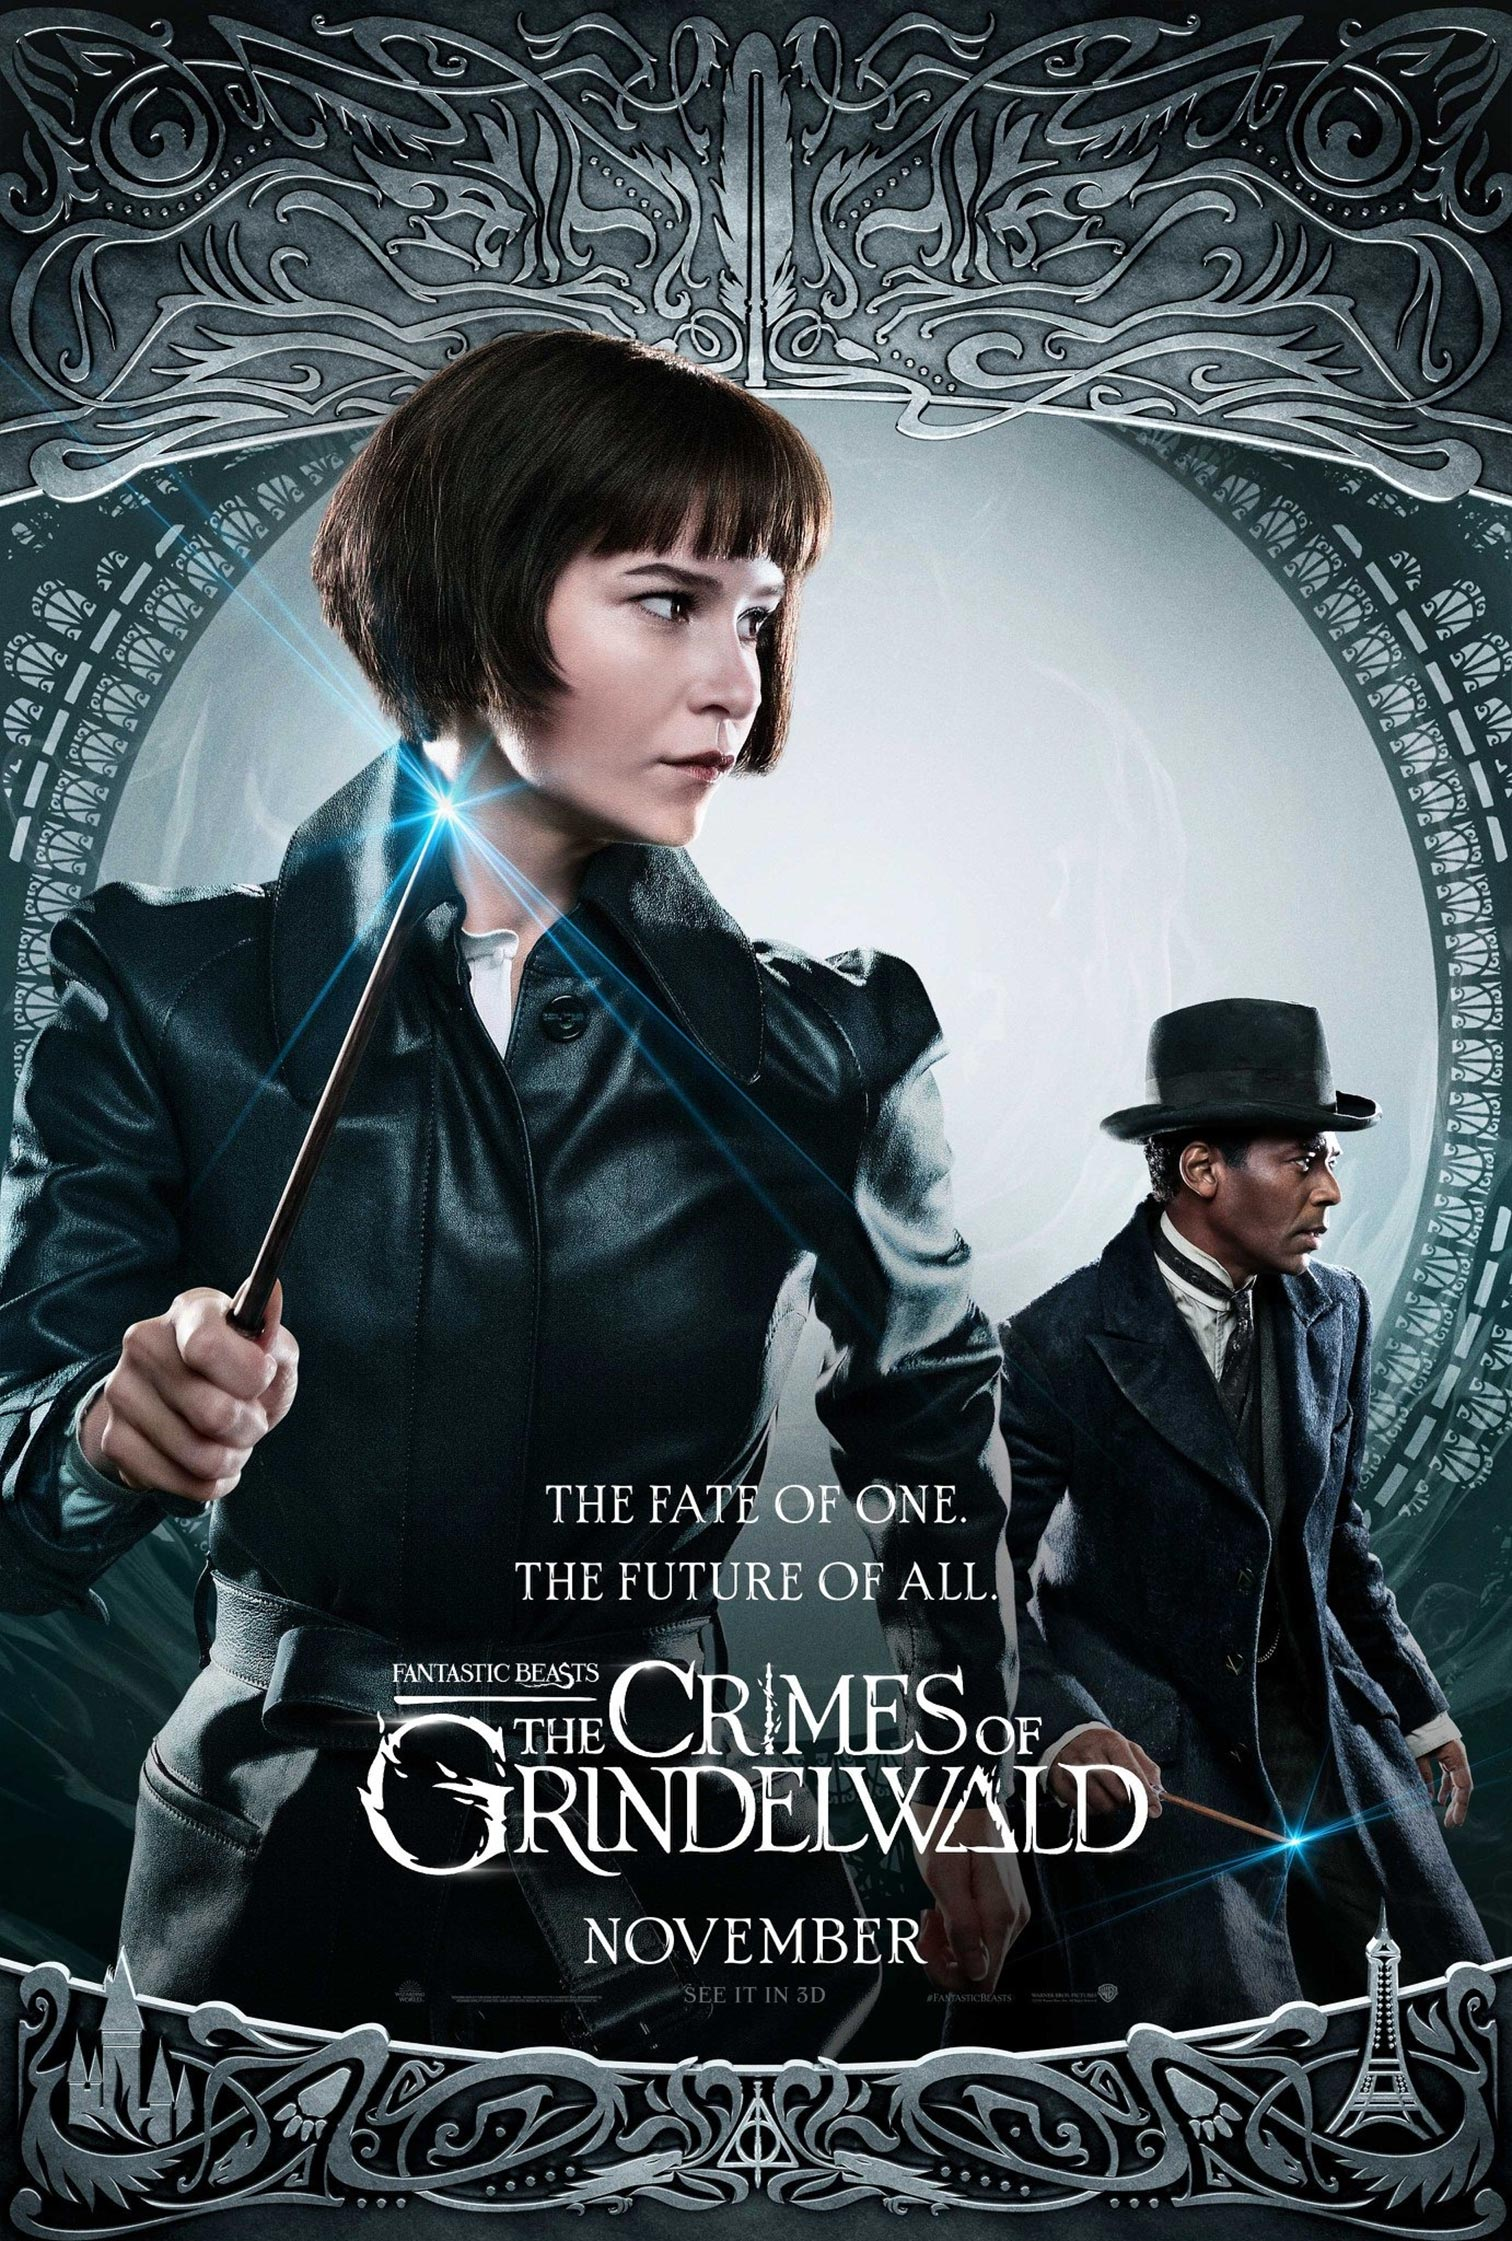 Fantastic Beasts: The Crimes of Grindelwald Poster #15